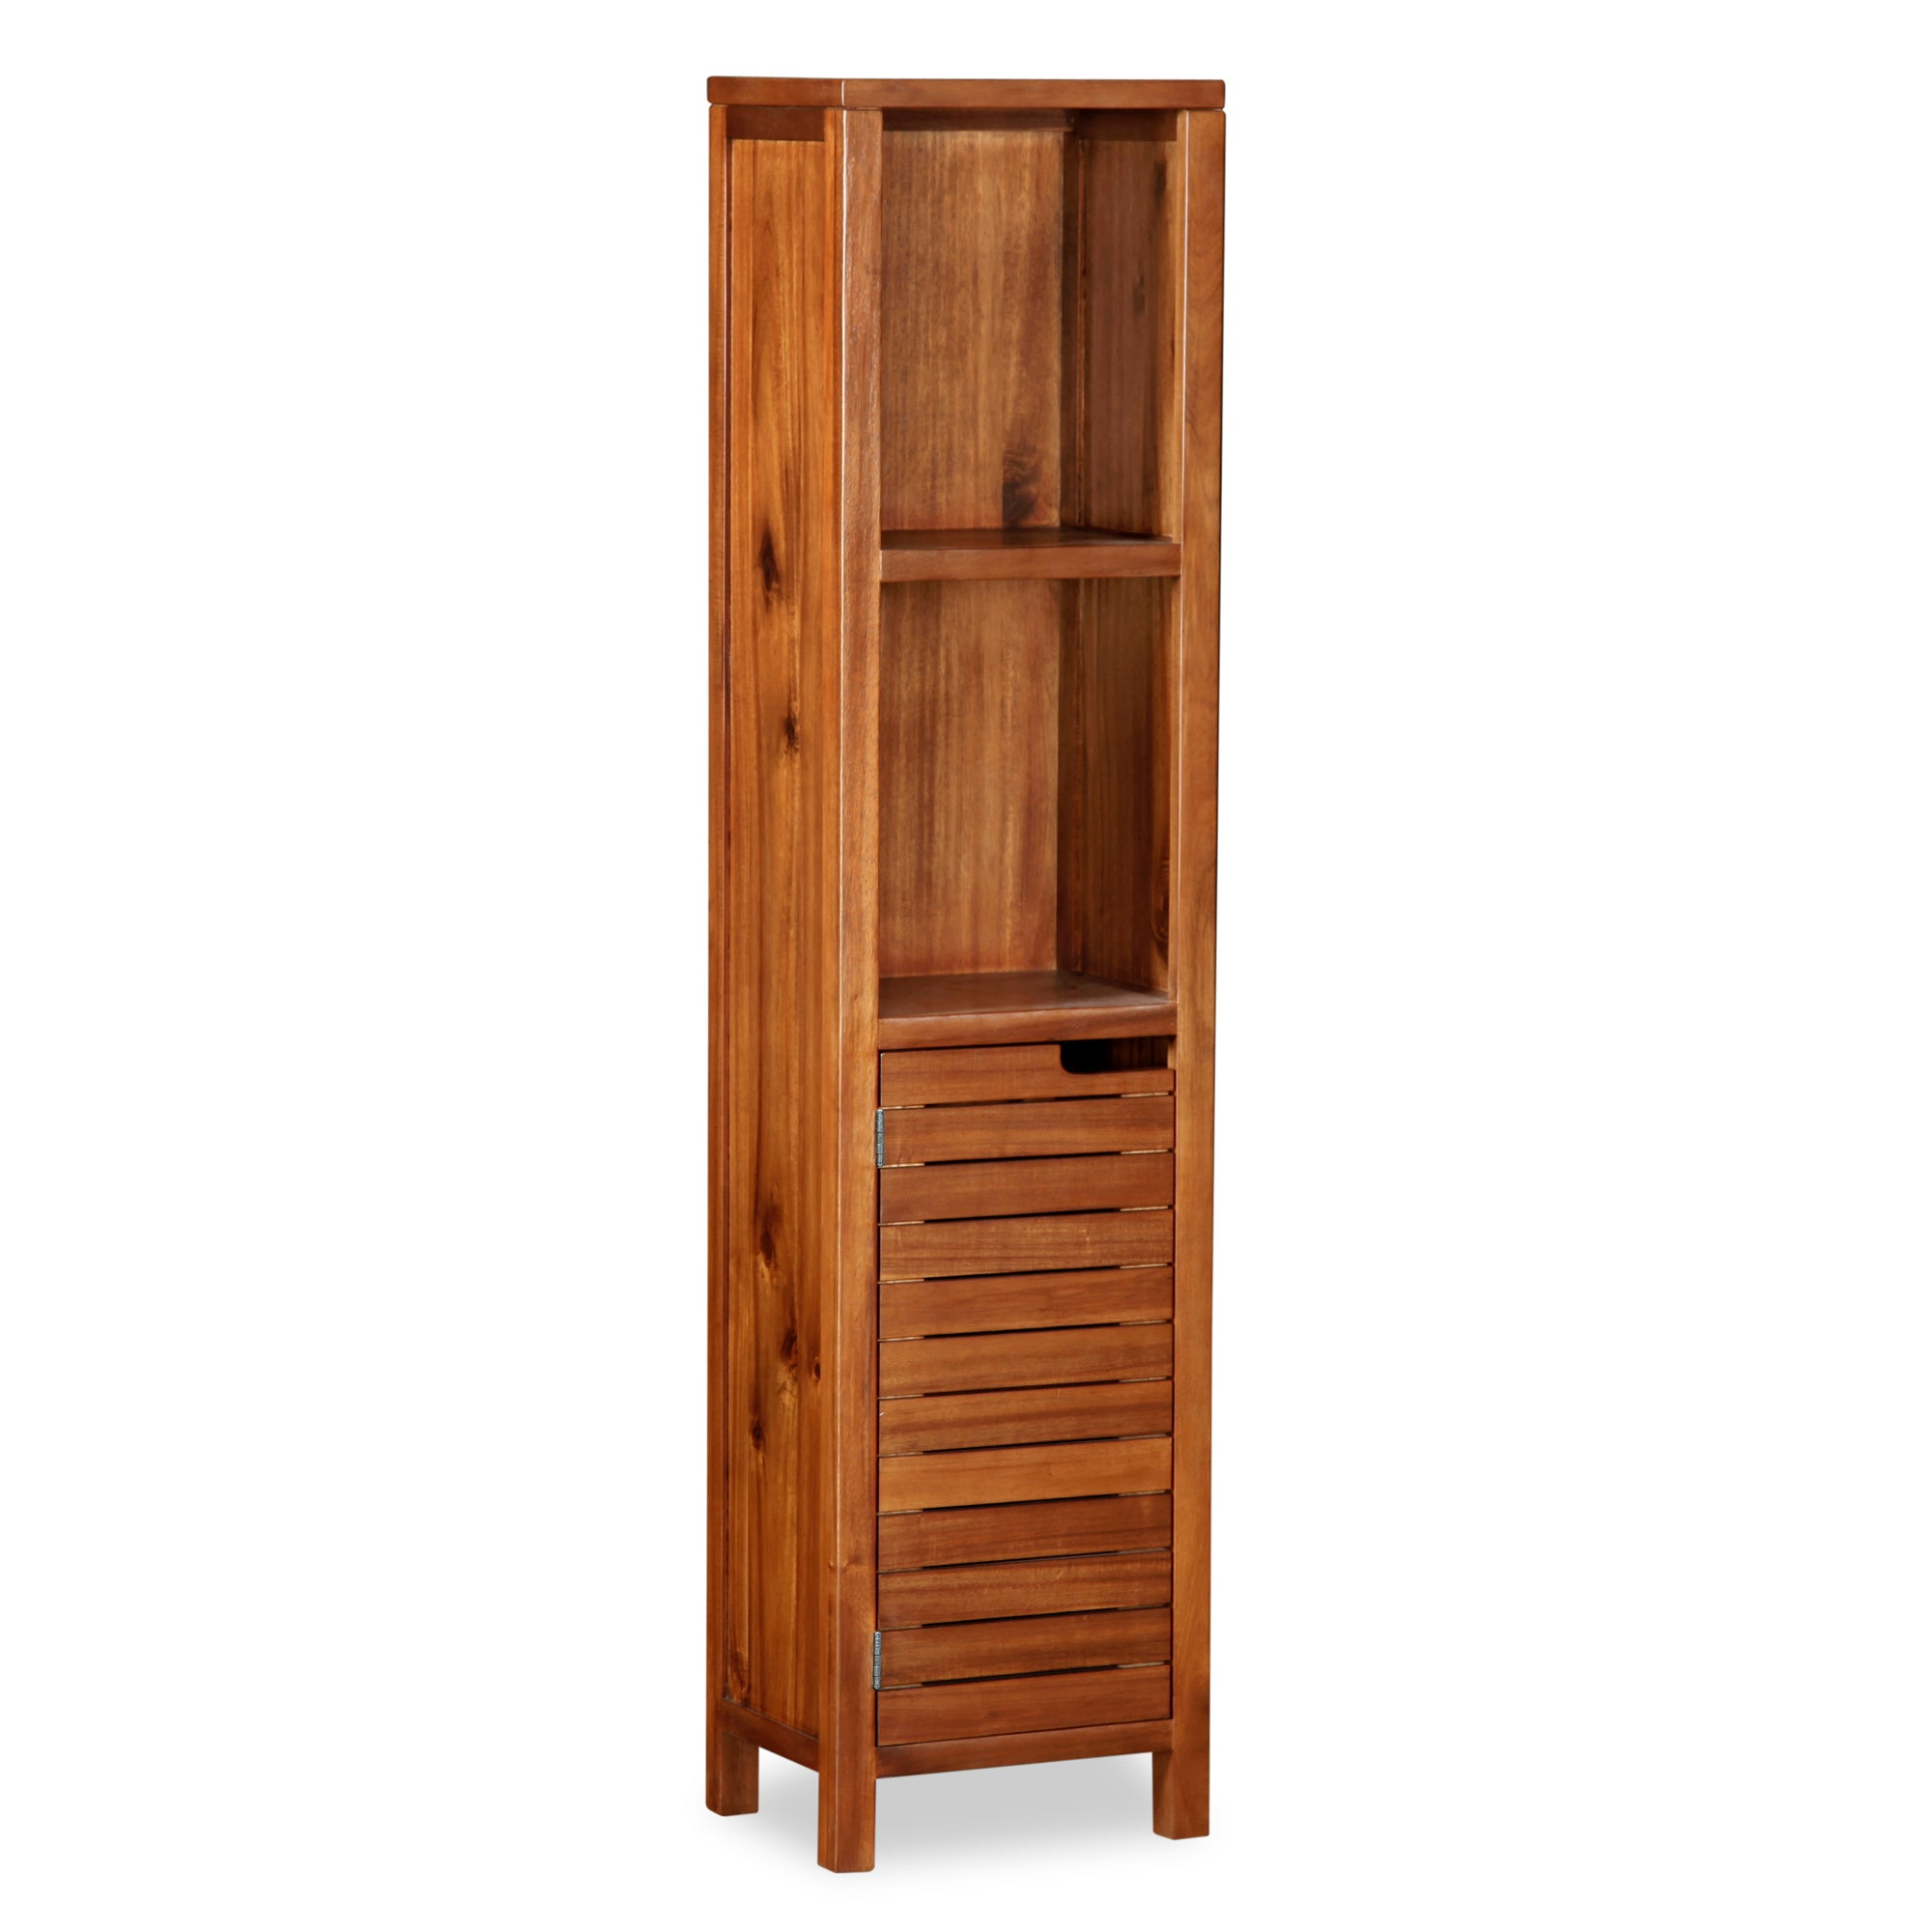 Tall storage cabinet shop for cheap furniture and save for Bathroom cabinets dunelm